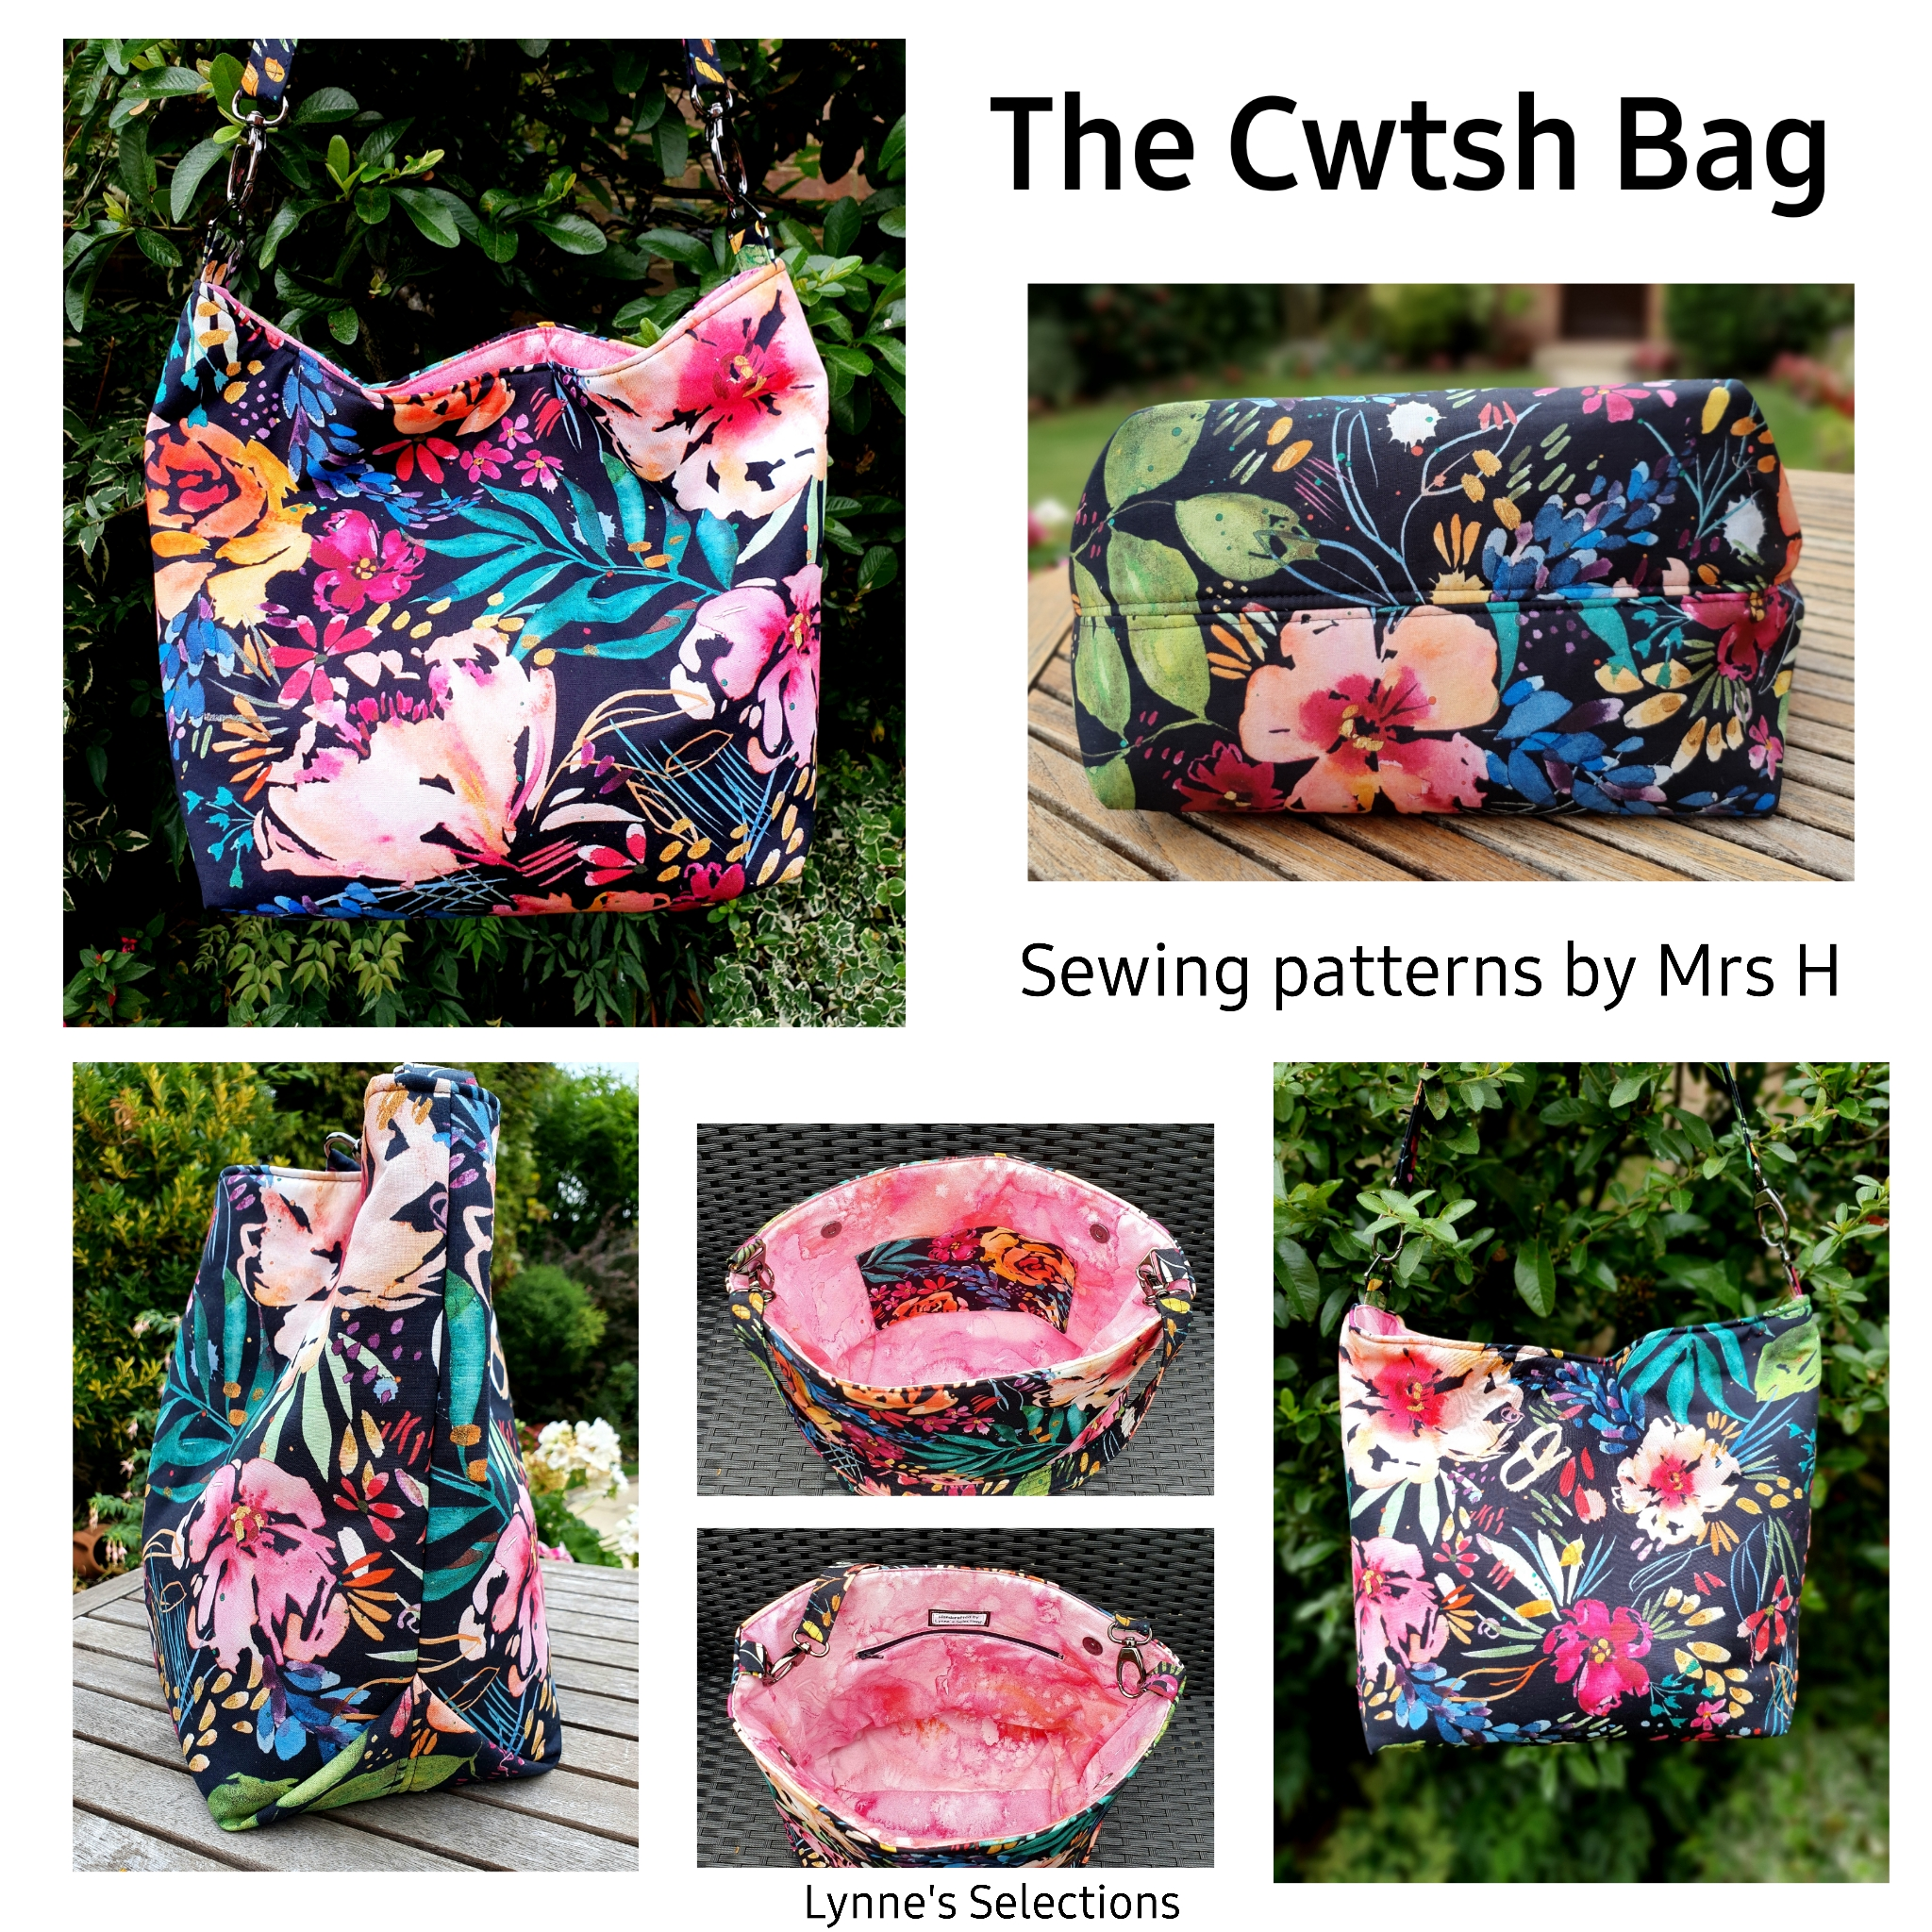 The Cwtsh Bag from Sewing Patterns by Mrs H, made by Lynne Baldwin